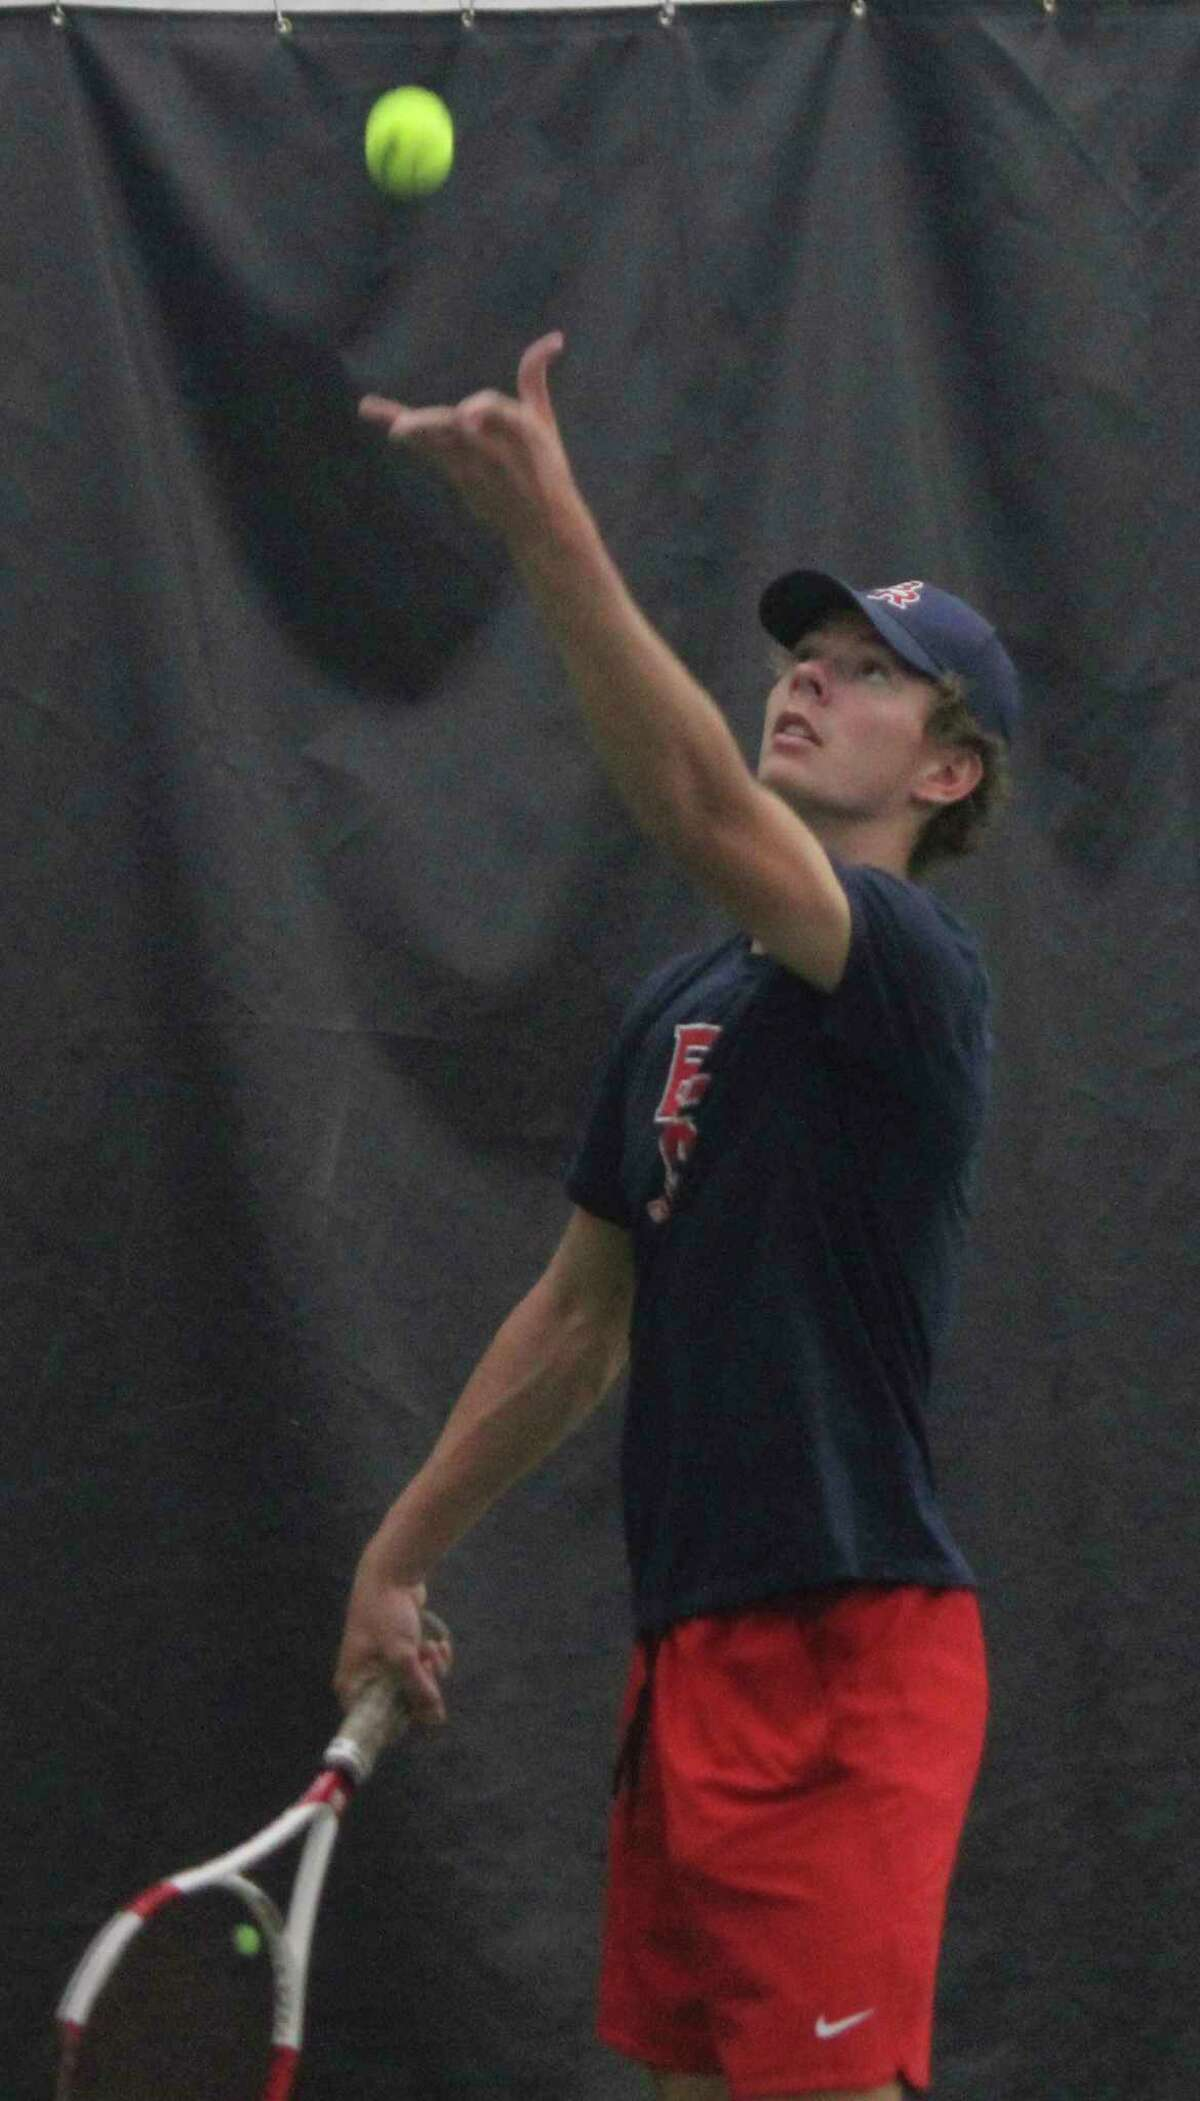 Big Rapids' Owen Bomay gets set to serve at No. 1 doubles for Big Rapids on Thursday. (Pioneer photo/John Raffel)